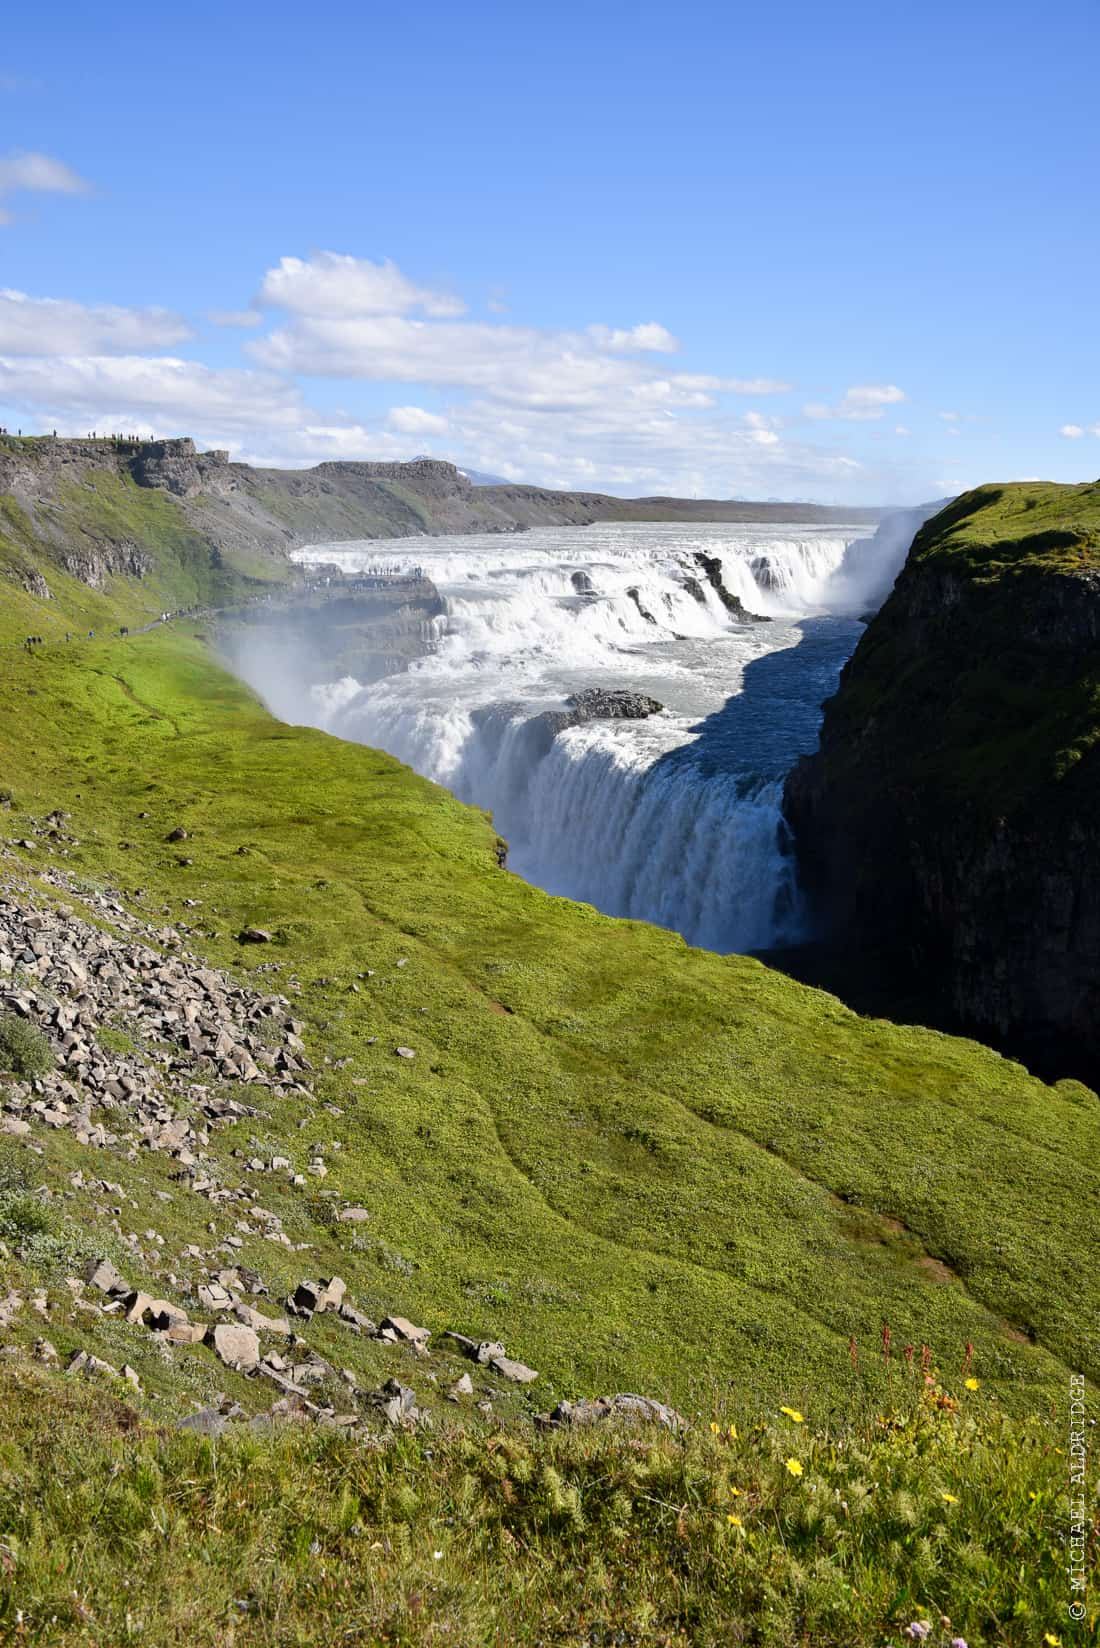 Turn a corner in Iceland and wow! Gullfoss Waterfall